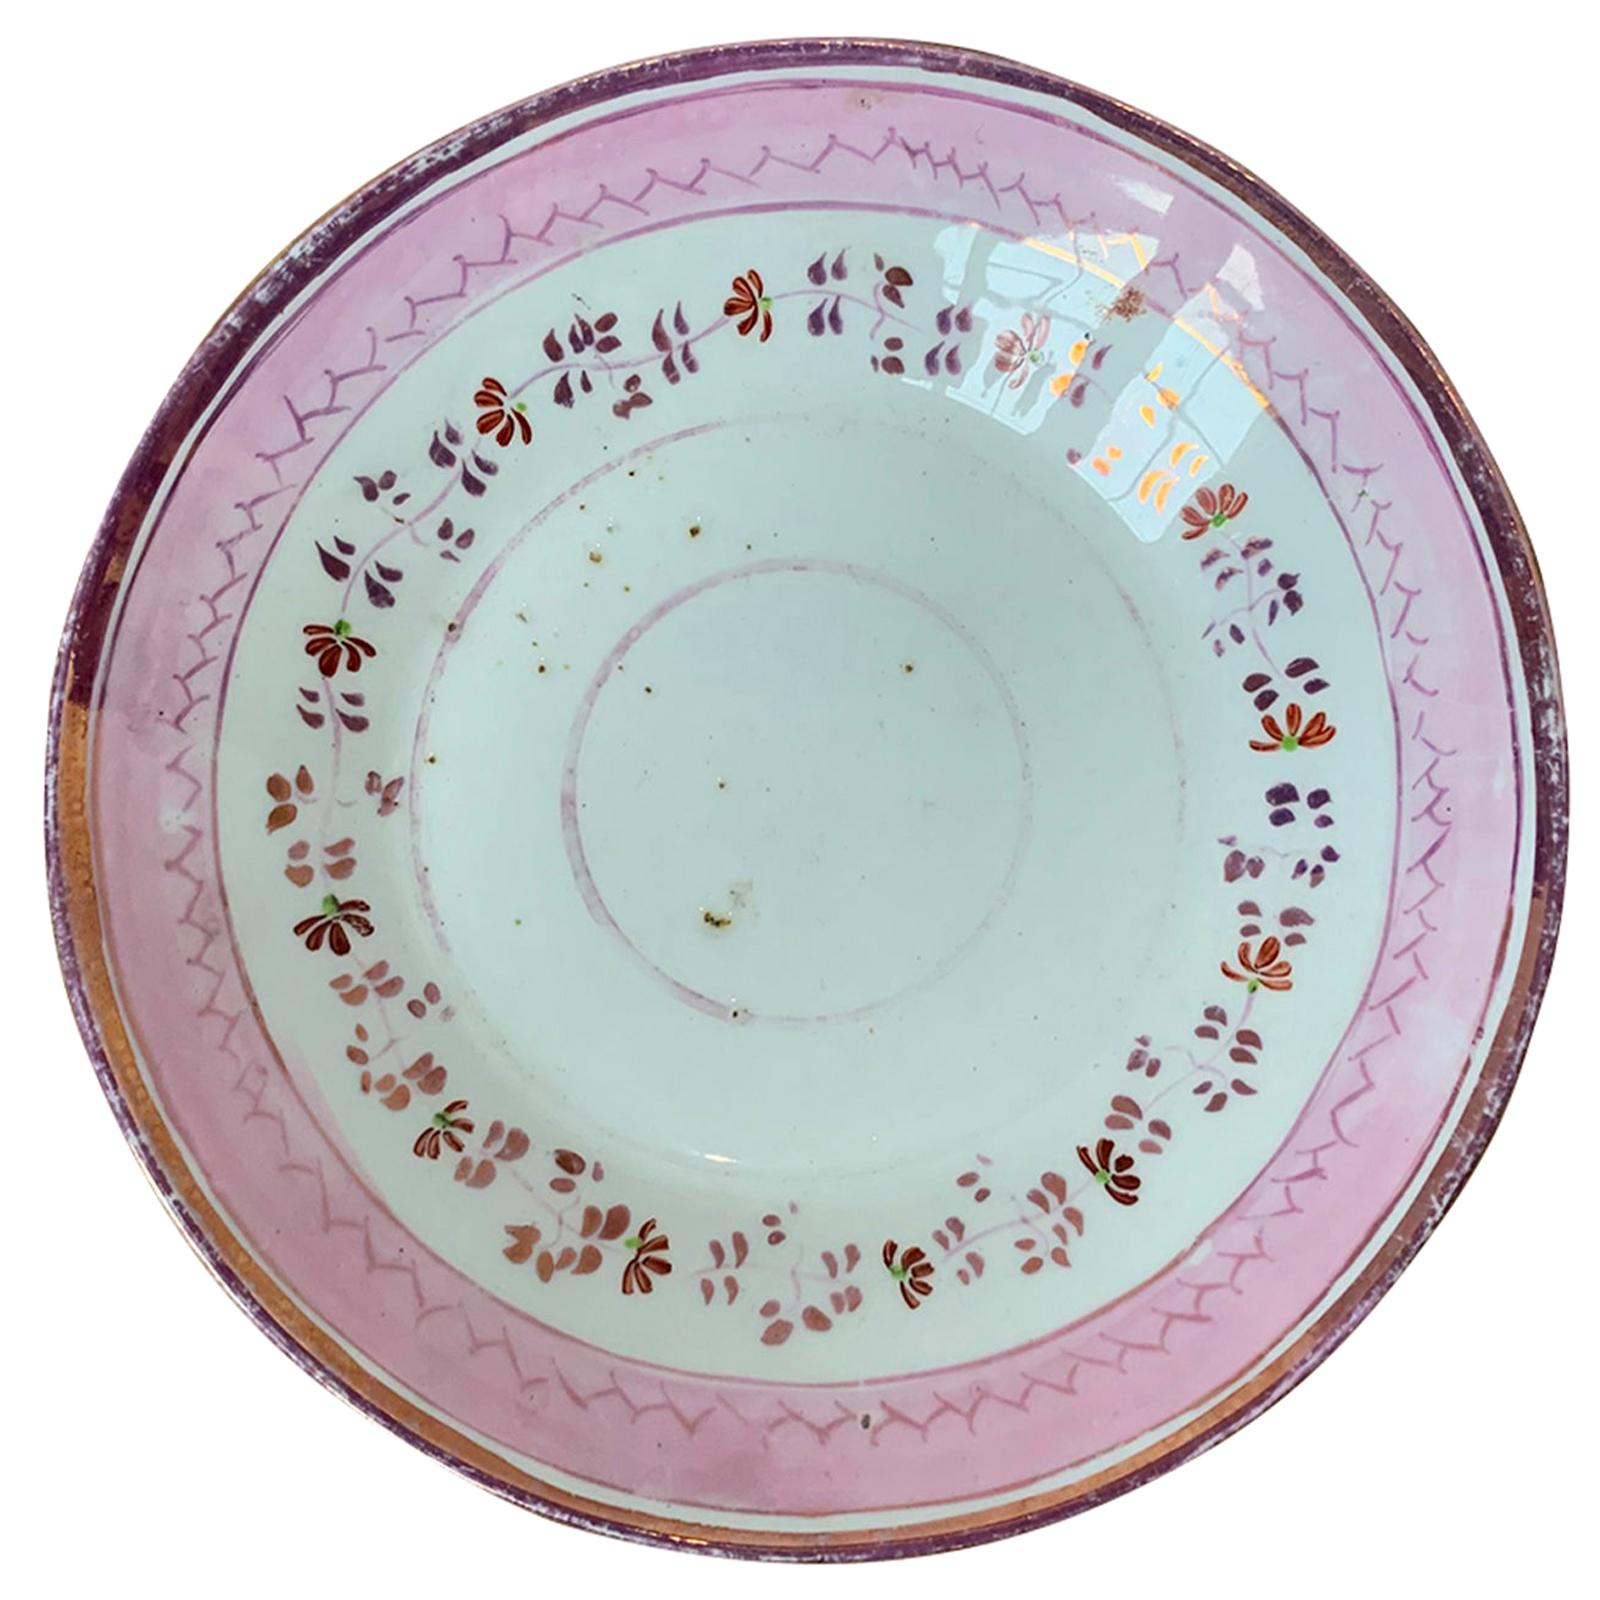 19th Century English Pink Floral Lusterware Round Porcelain Plate, Unmarked